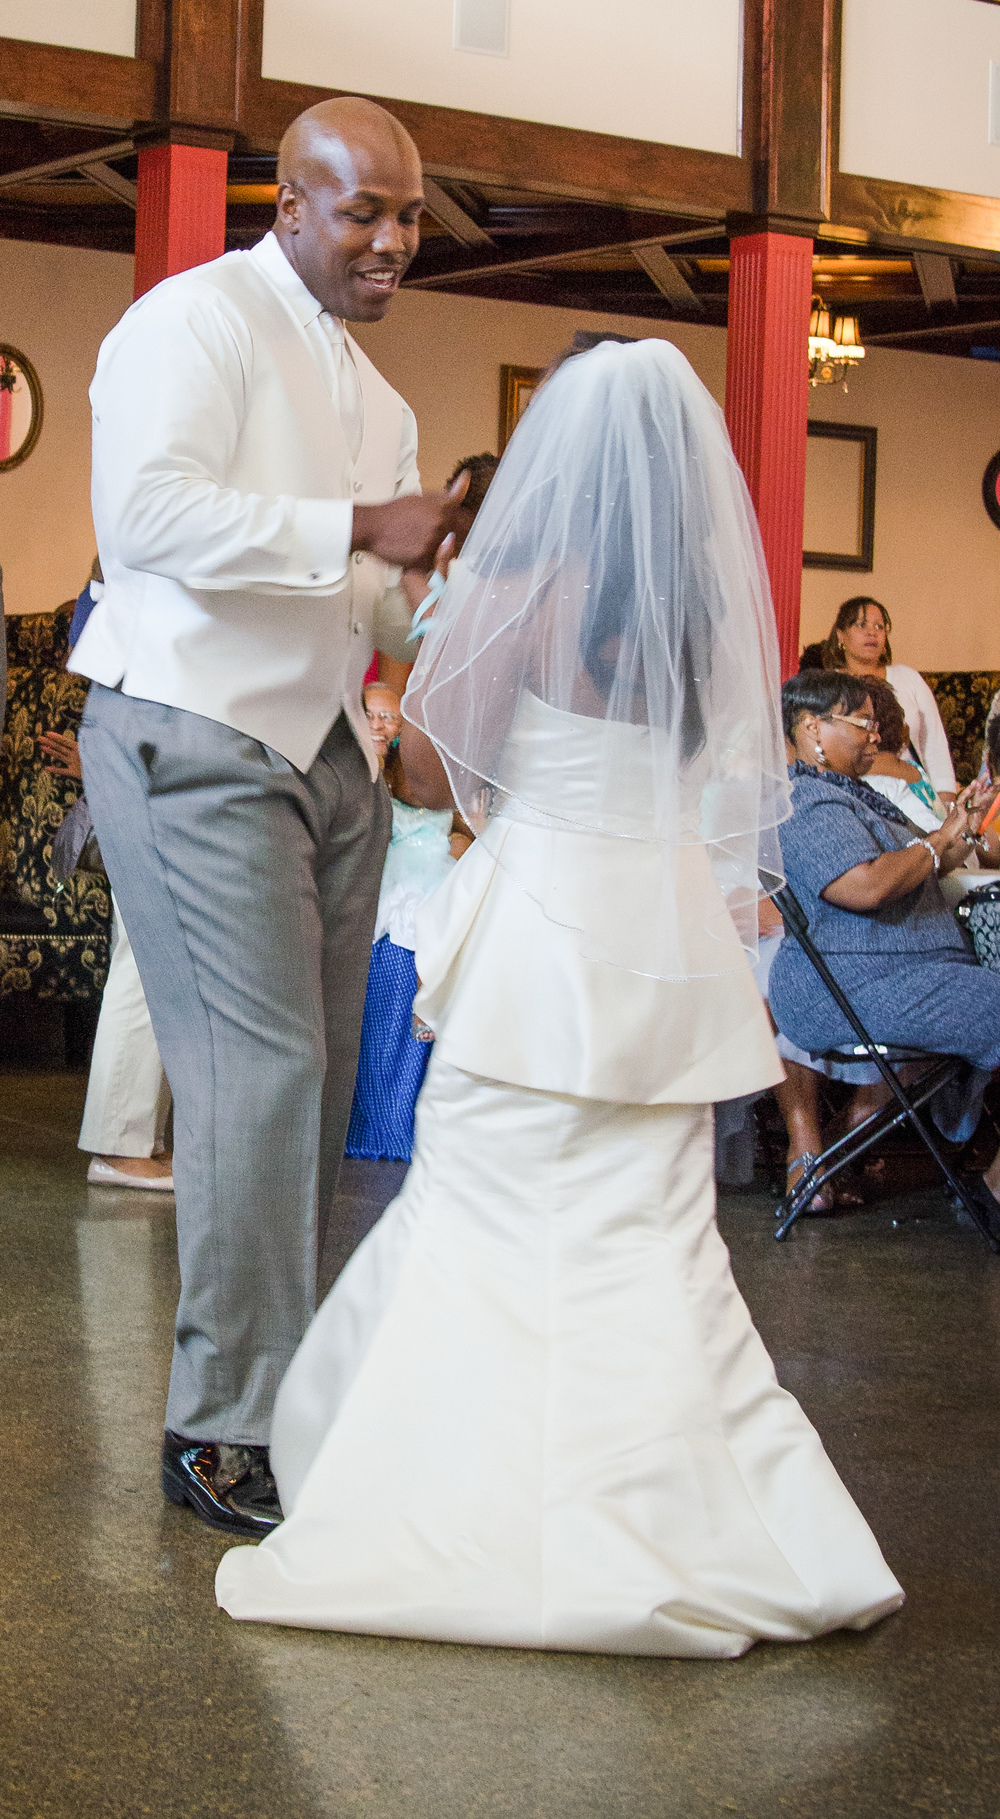 Yes, he was singing to his new wife during their first dance. How awesome is that?!?